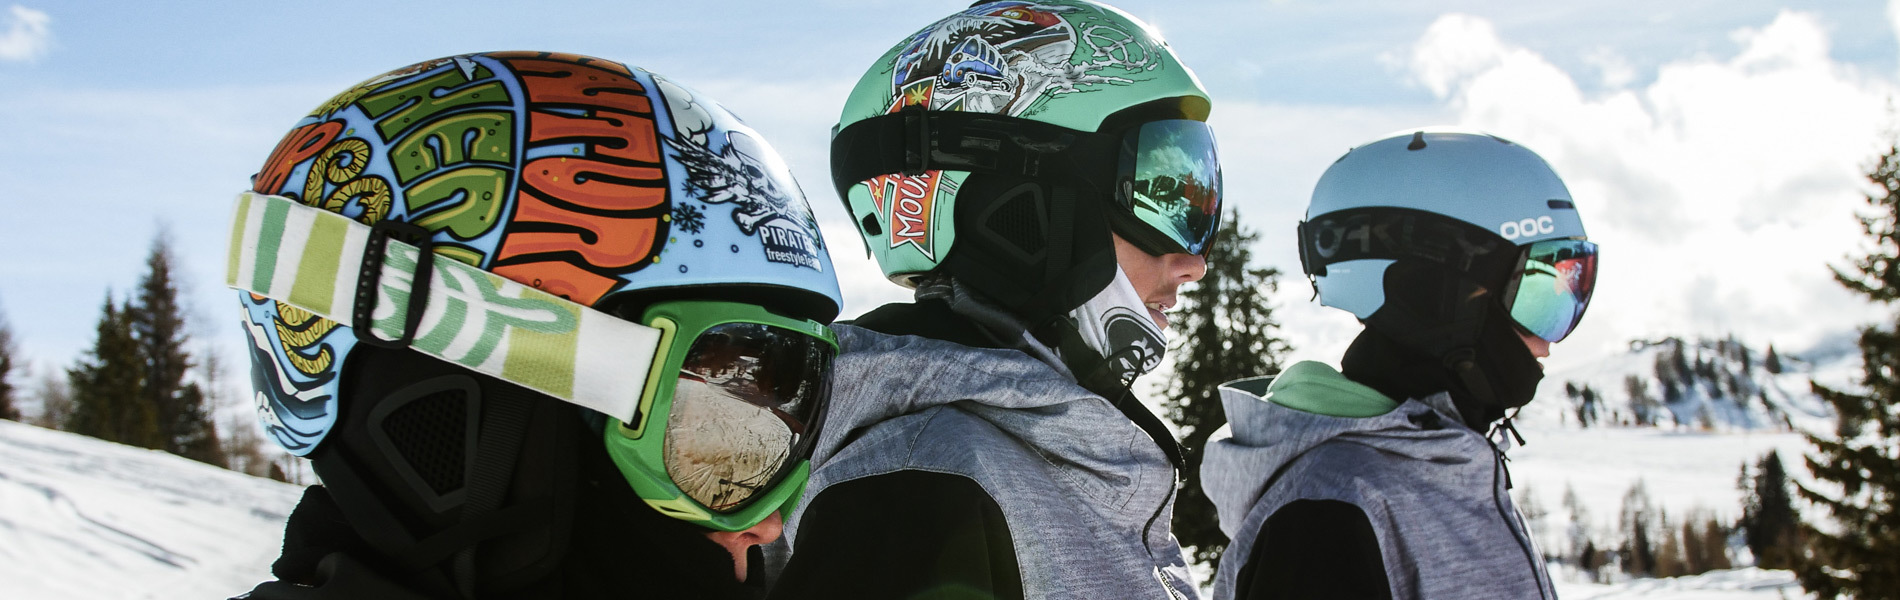 The Young Pirates of the Snowpark Alta Badia